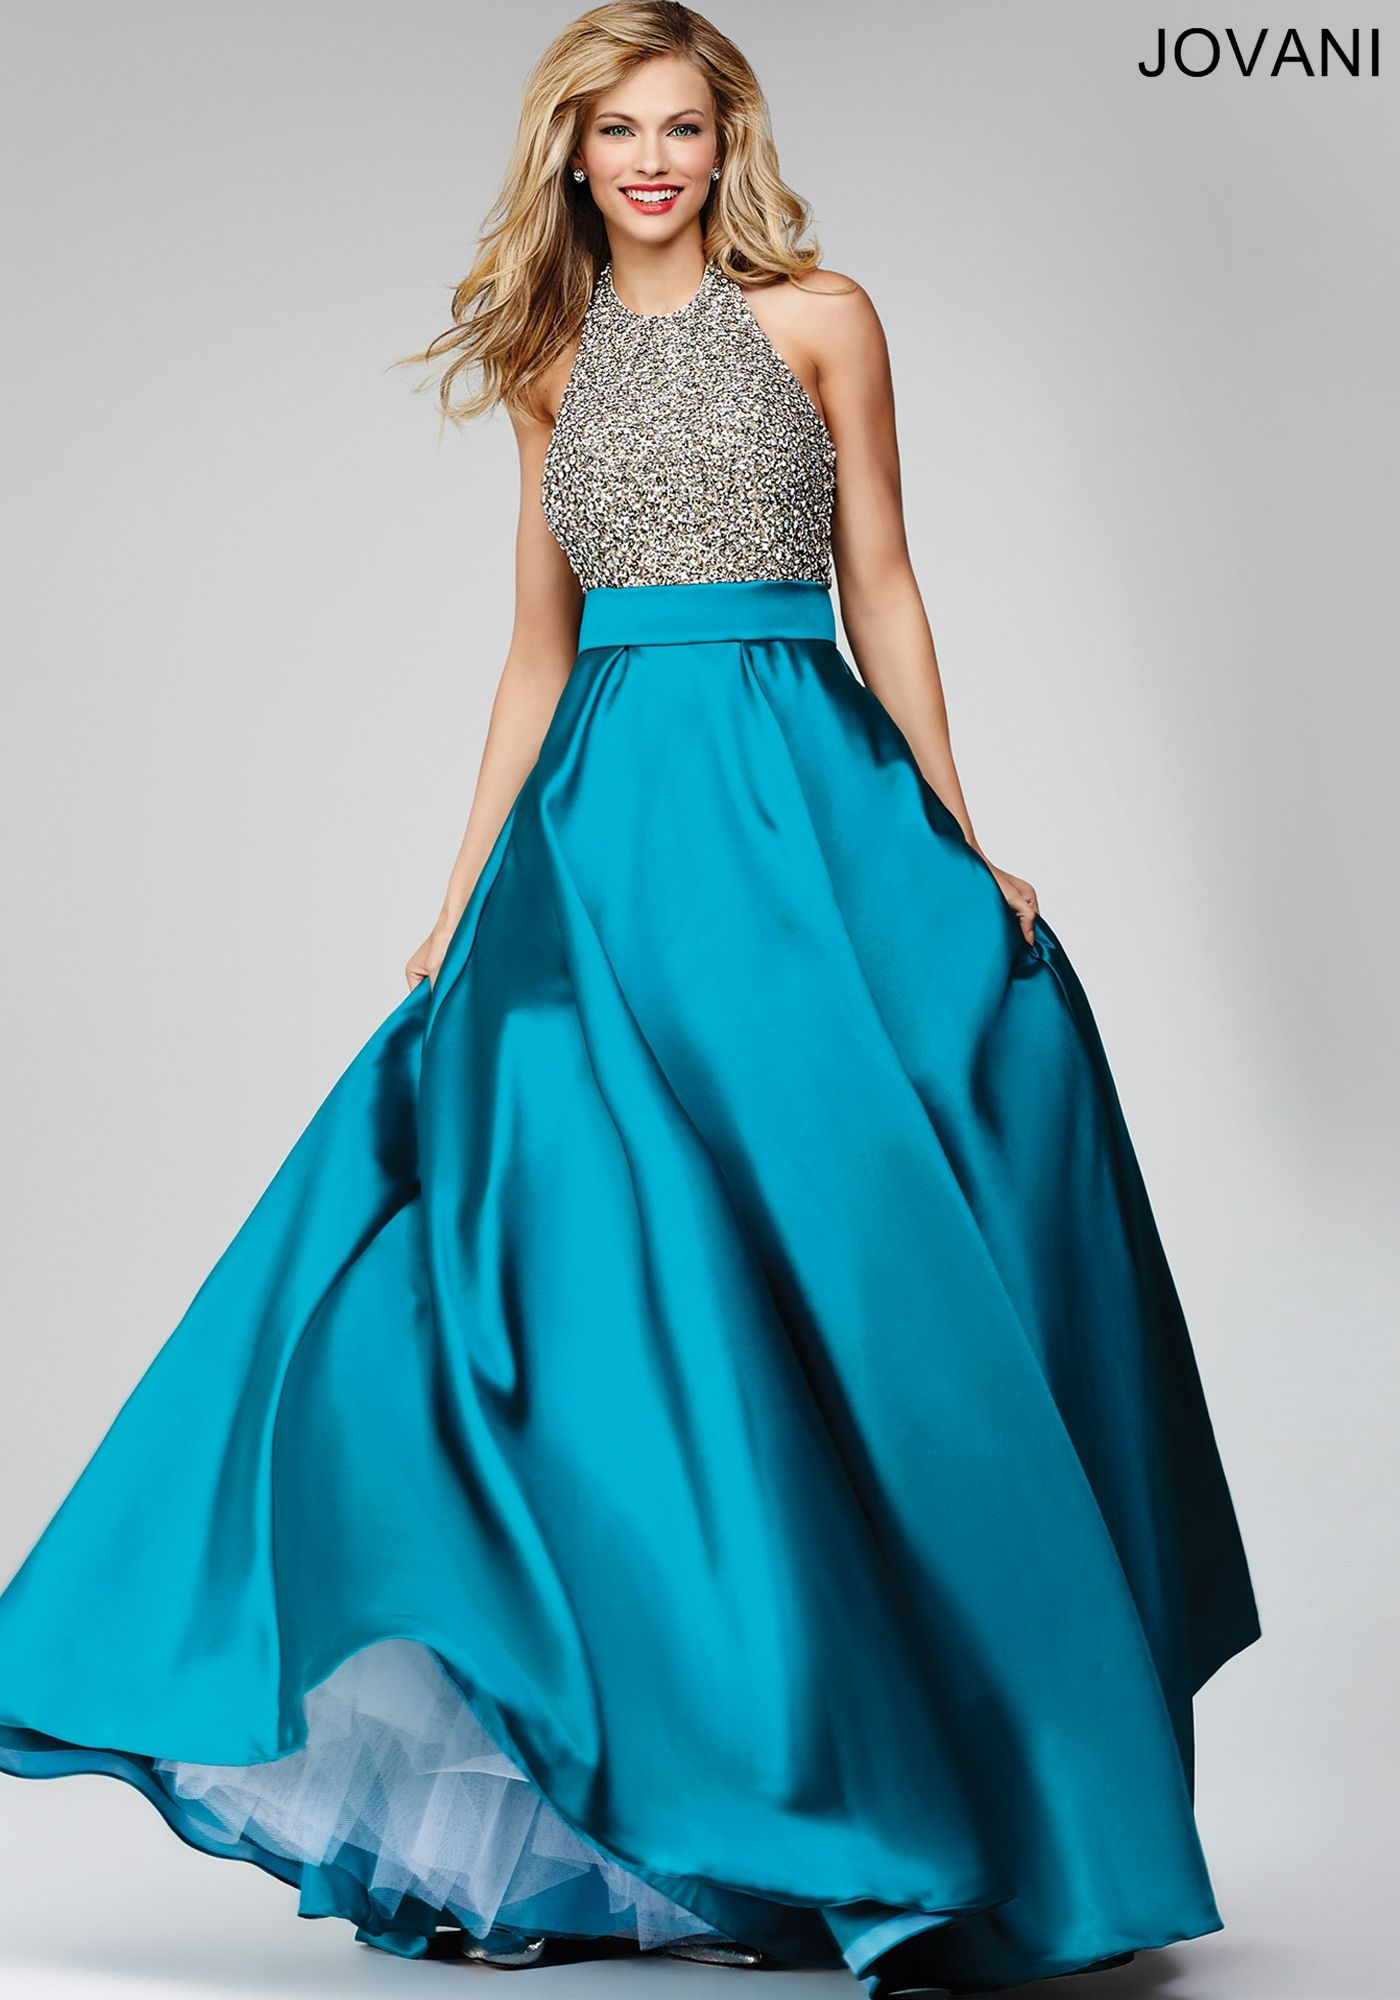 Elegant A-line prom dress features a crystal embellished bodice ...